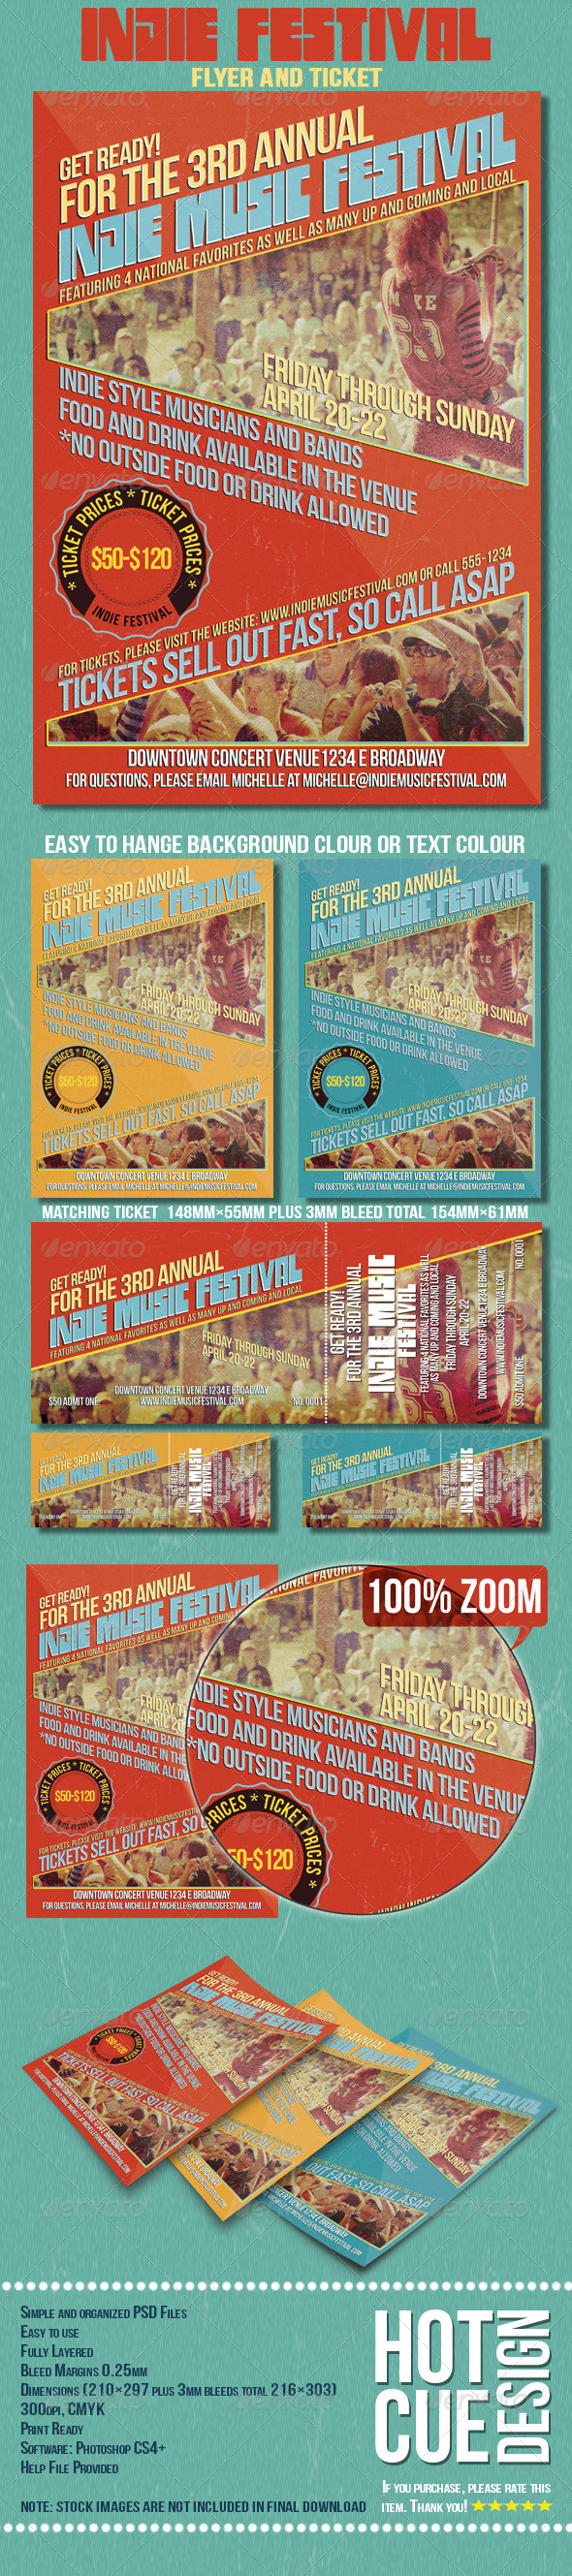 GraphicRiver Indie Music Festival Flyer And Ticket 7948271